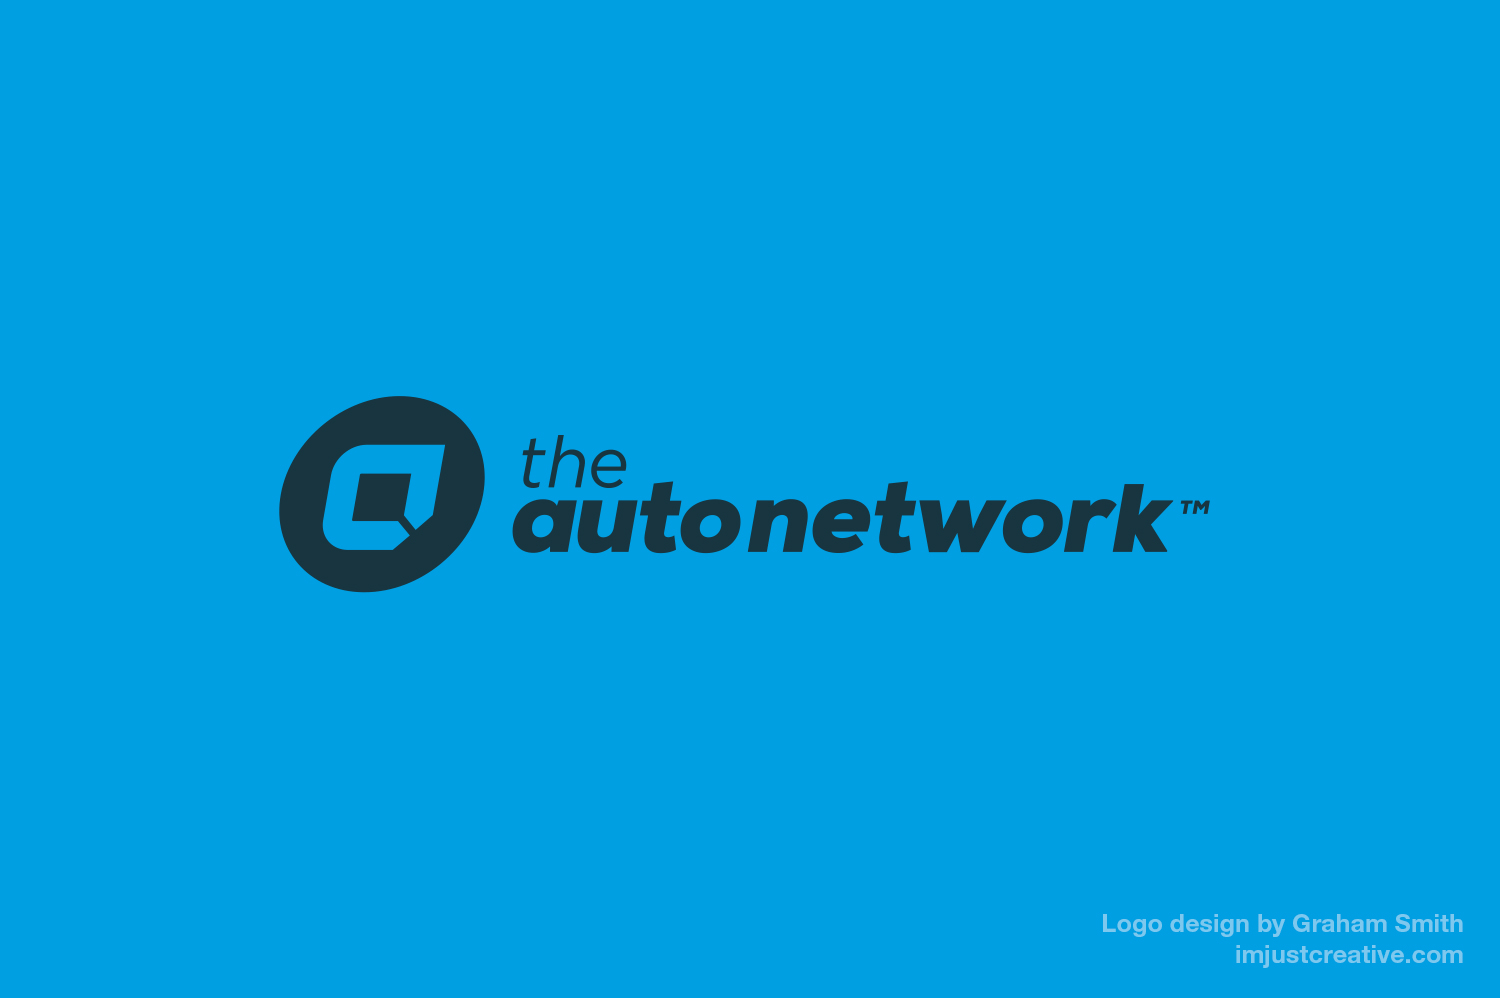 The Auto Network logo design by imjustcreative